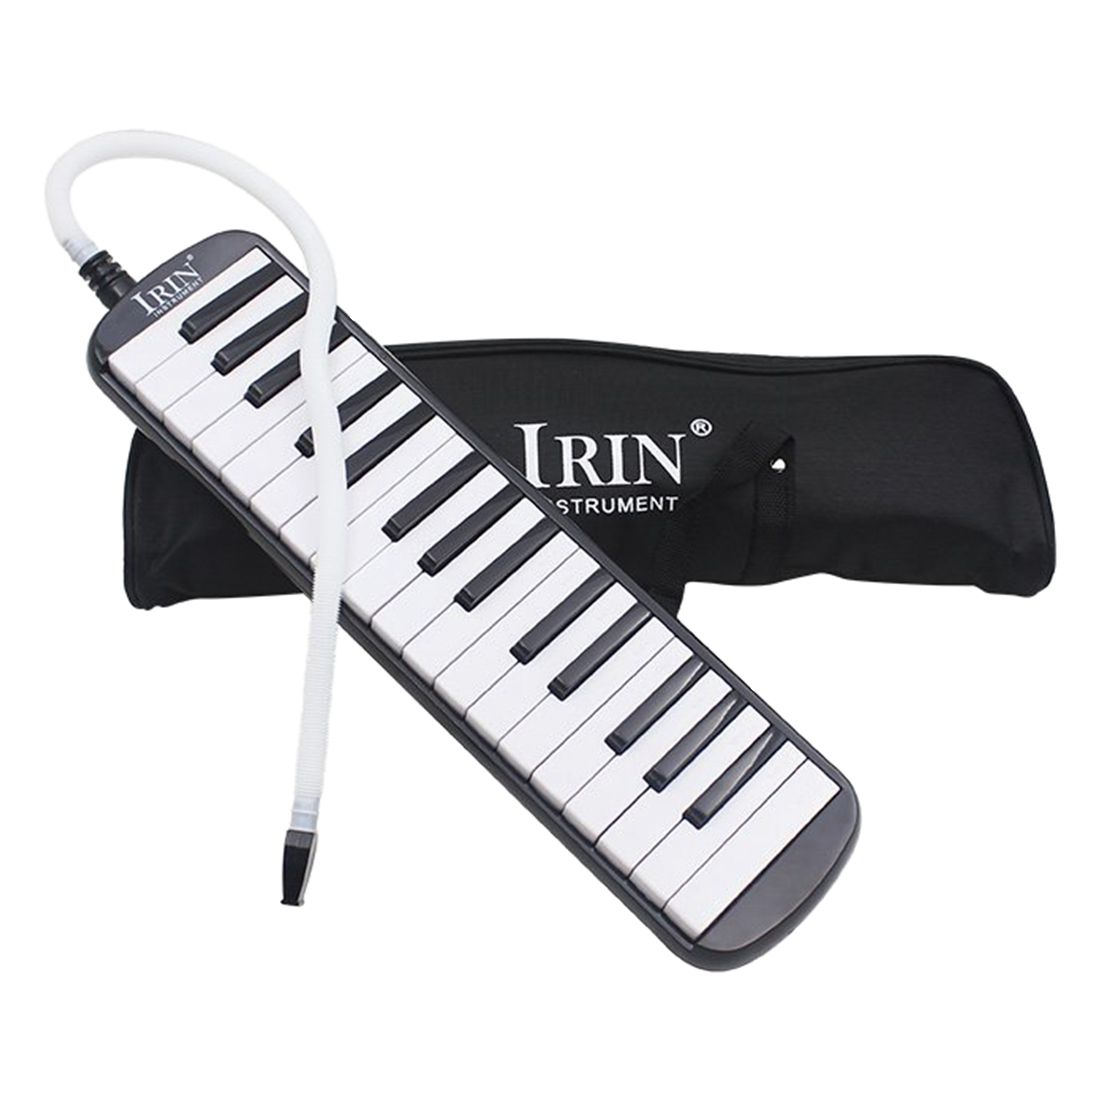 XFDZ-IRIN 1 Set 32 Key Piano Style Melodica With Box Organ Accordion Mouth Piece Blow Key Board (Black)